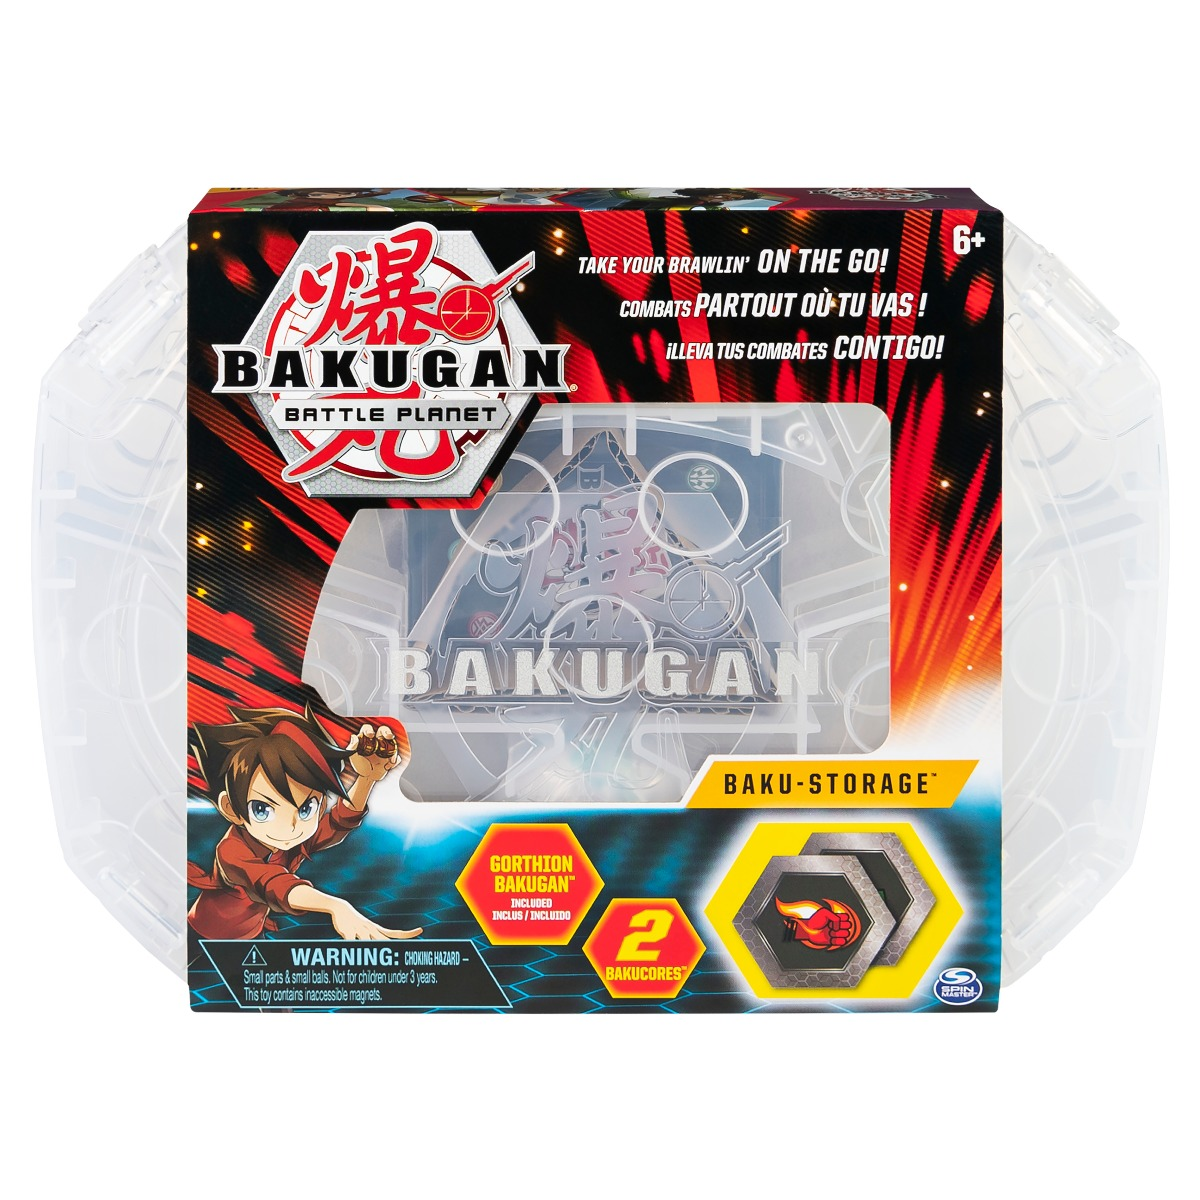 Set Baku-cutie de depozitare Bakugan Battle Planet, White, 20115350